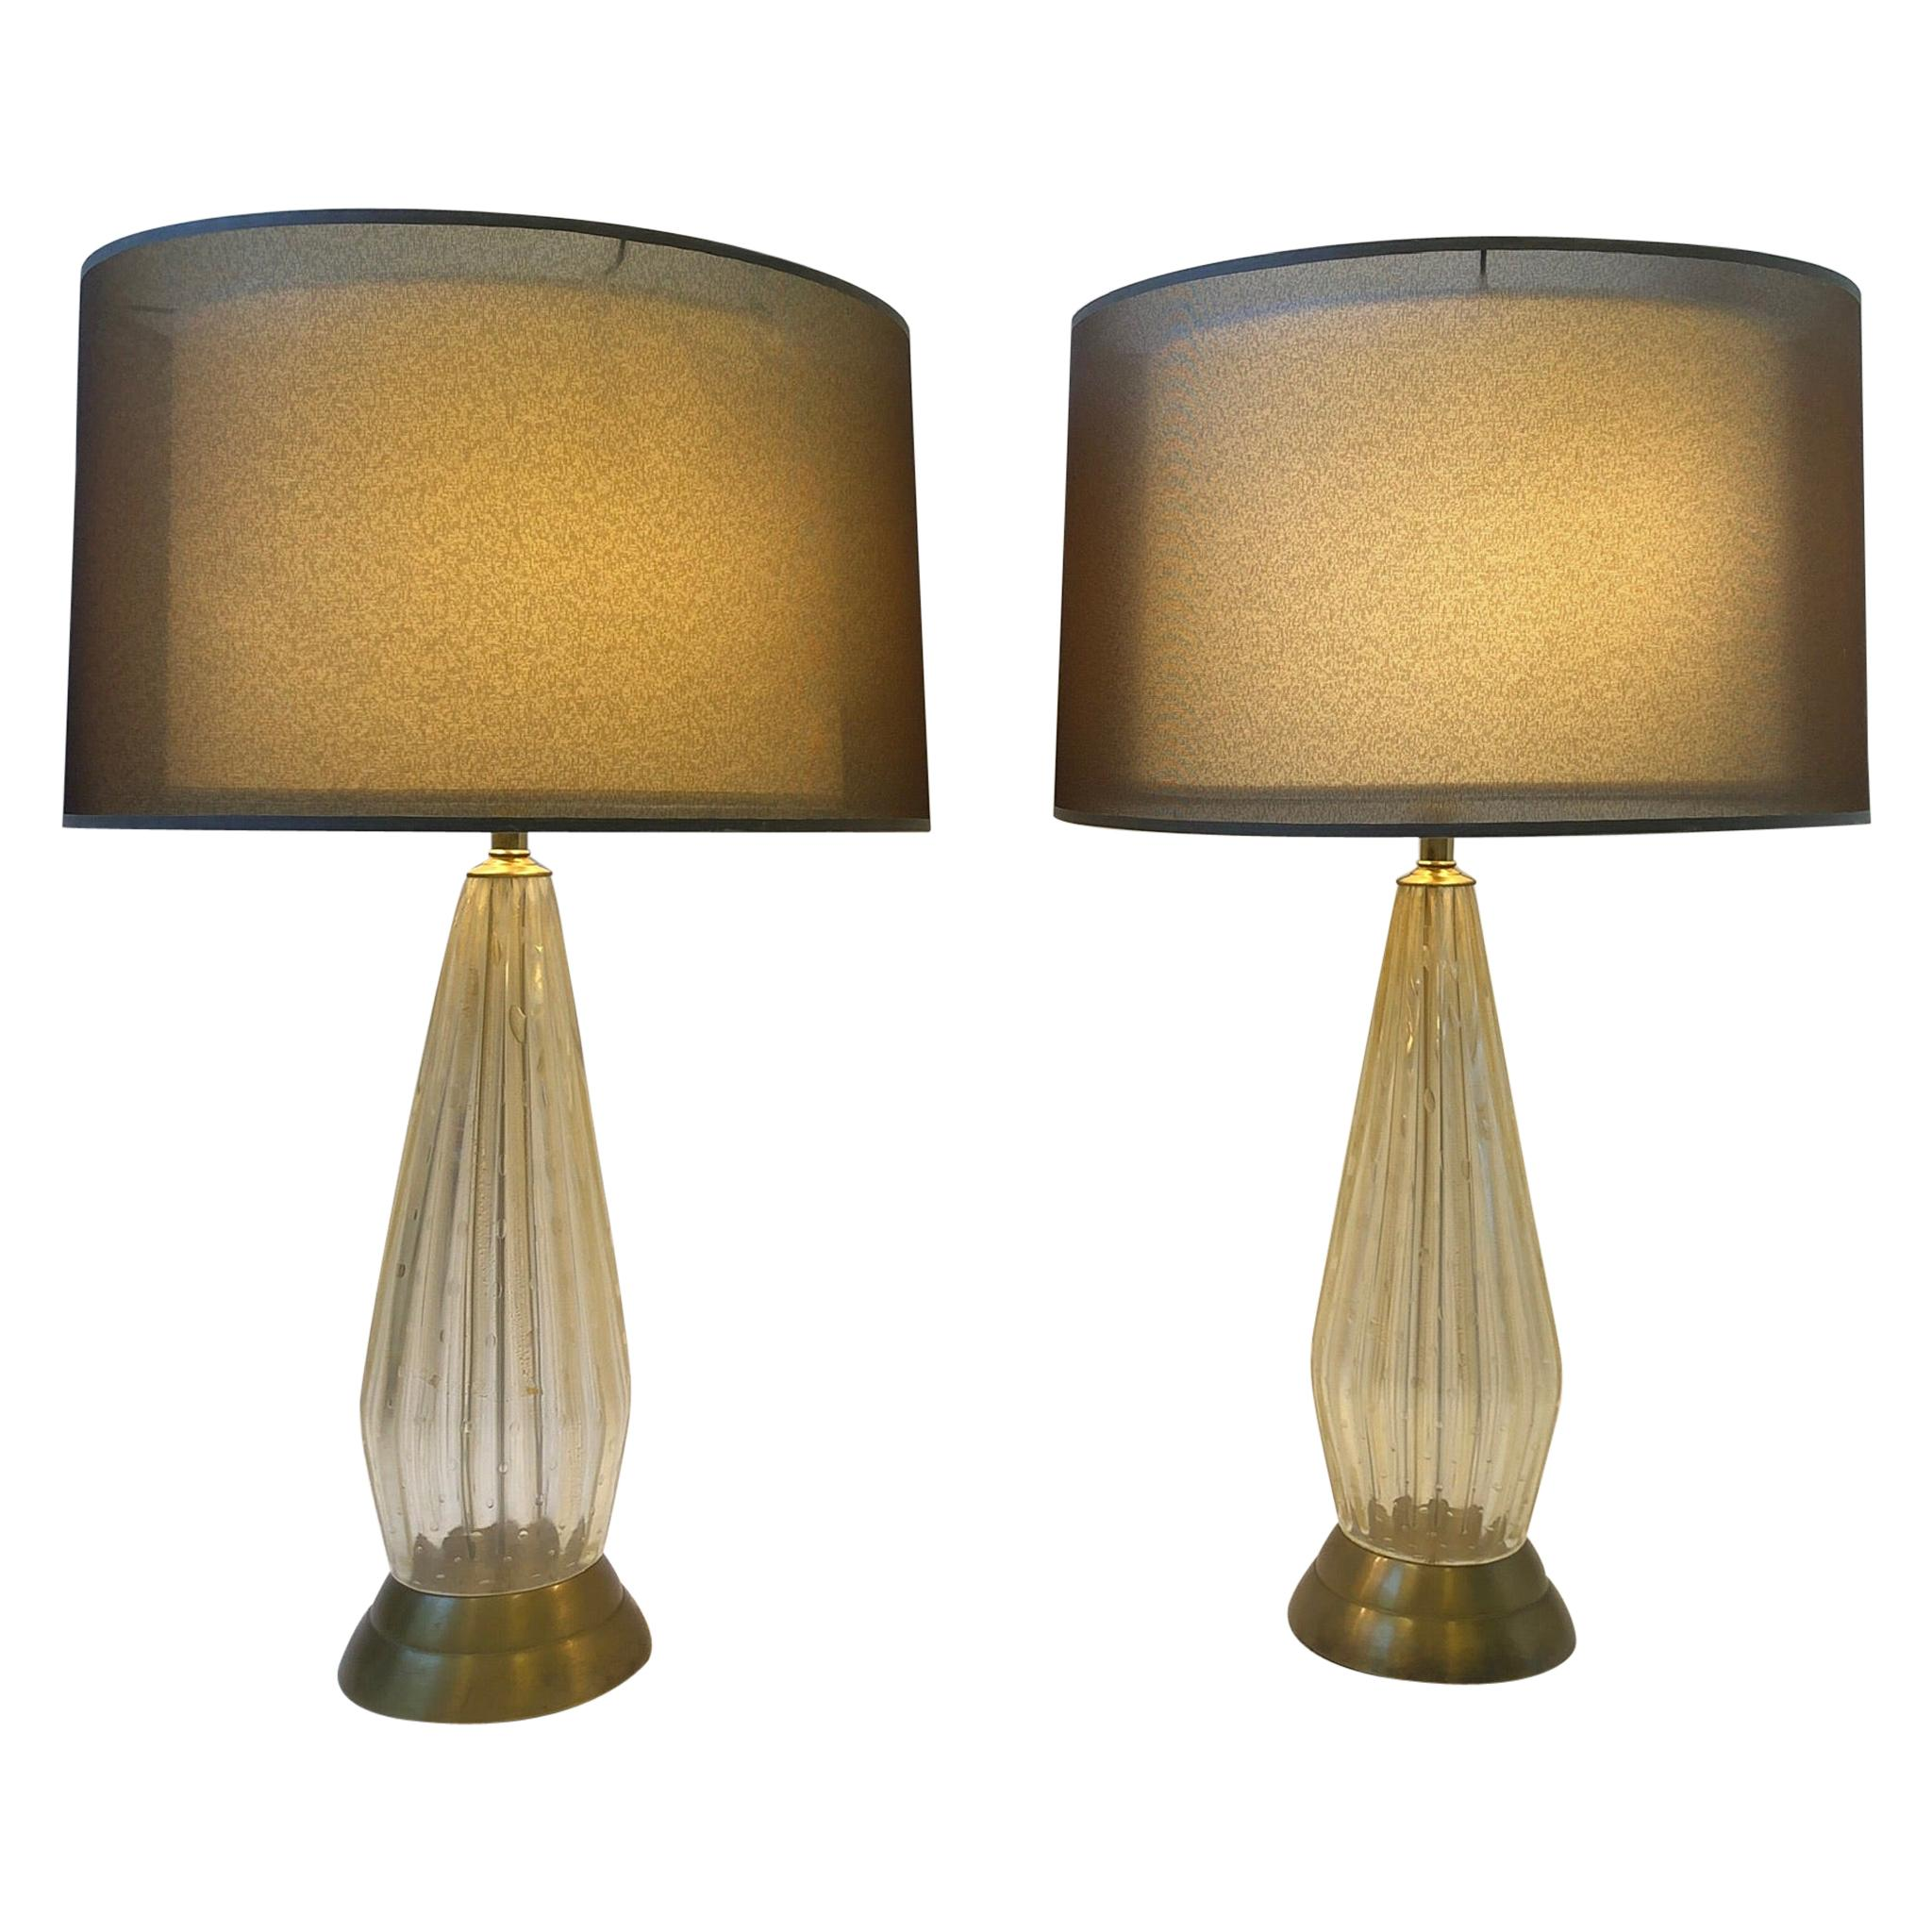 Pair of Italian Gold Dust Murano Glass and Brass Table Lamps by Marbro Lamp Co.